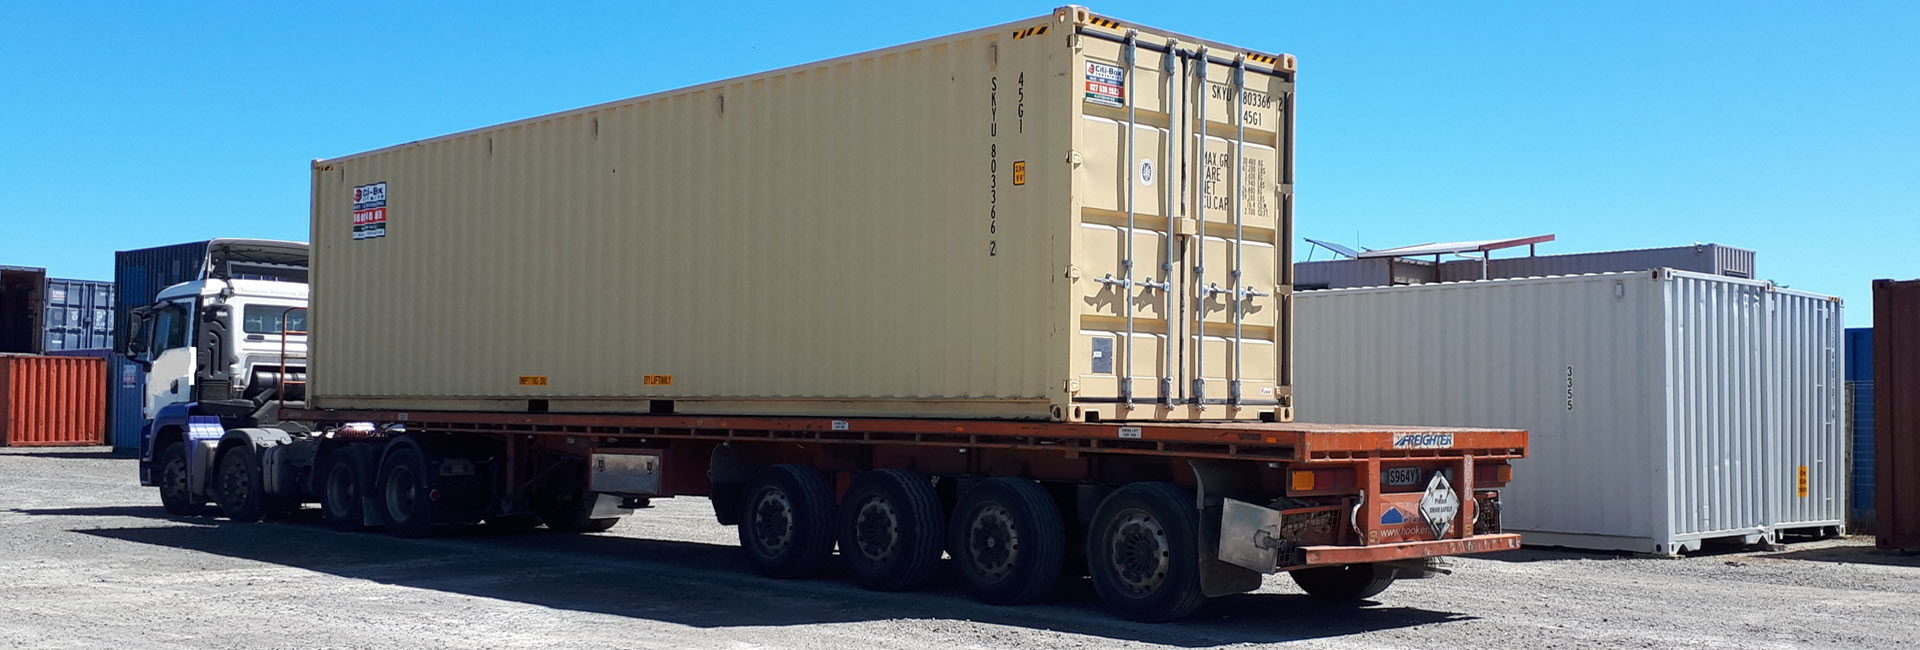 40' High Cube container delivery